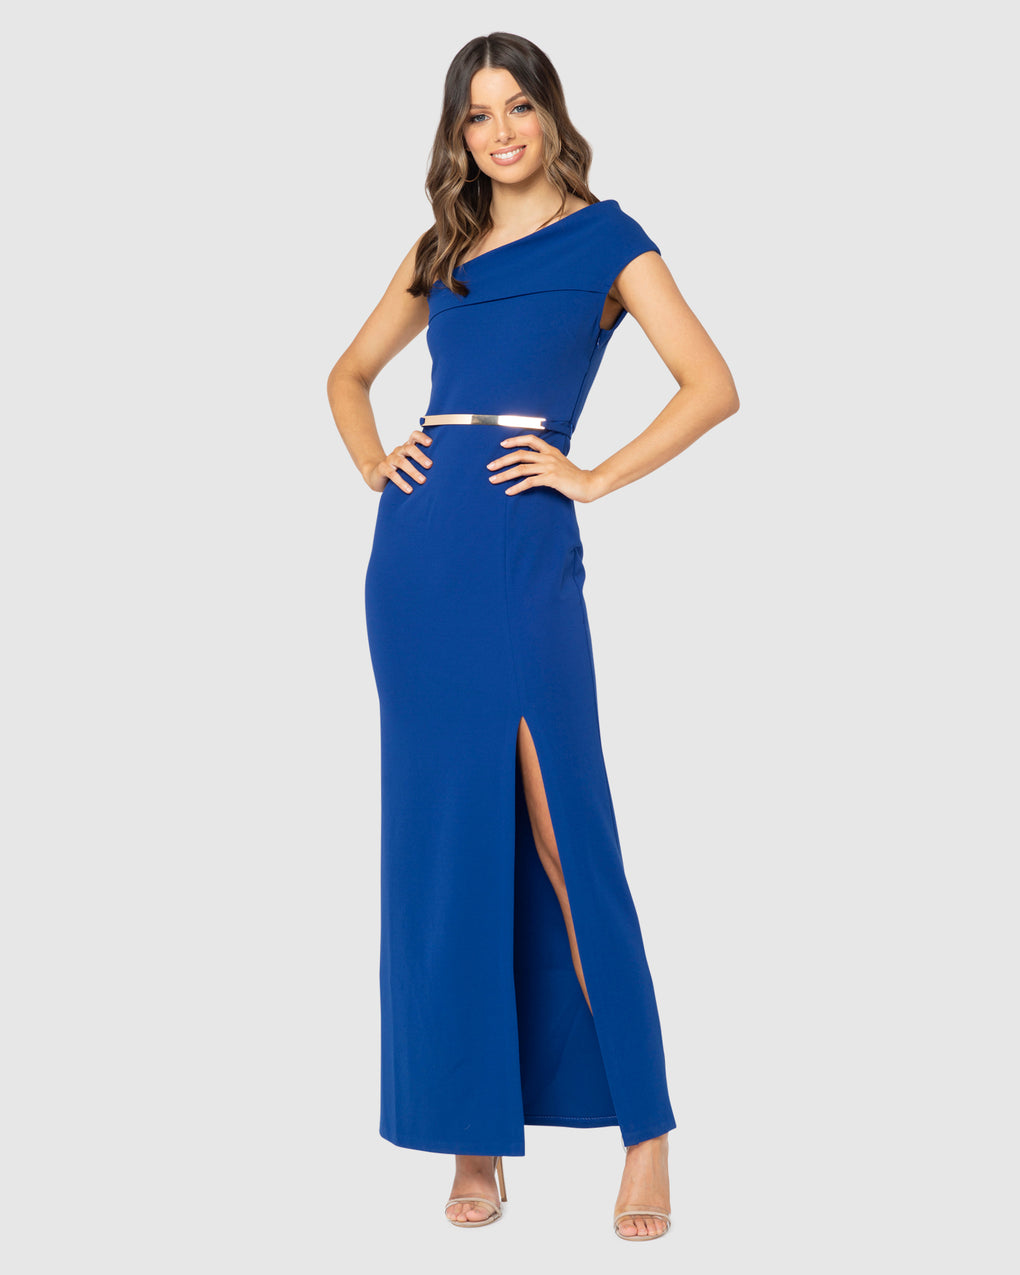 Tribeca Gown